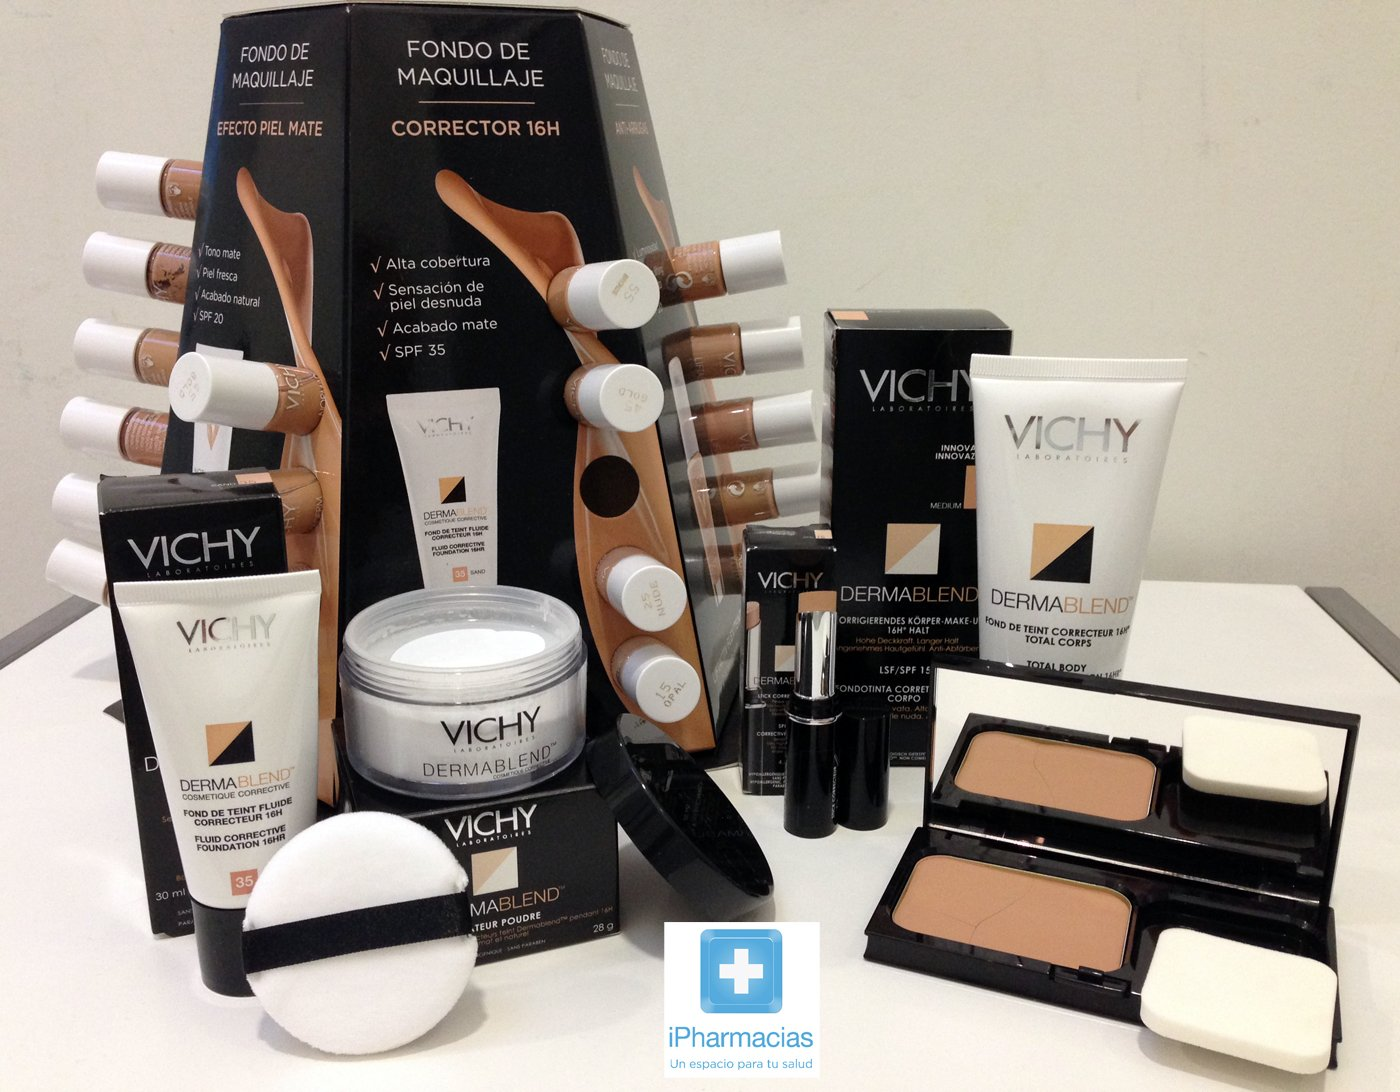 Maquillaje Vichy 3